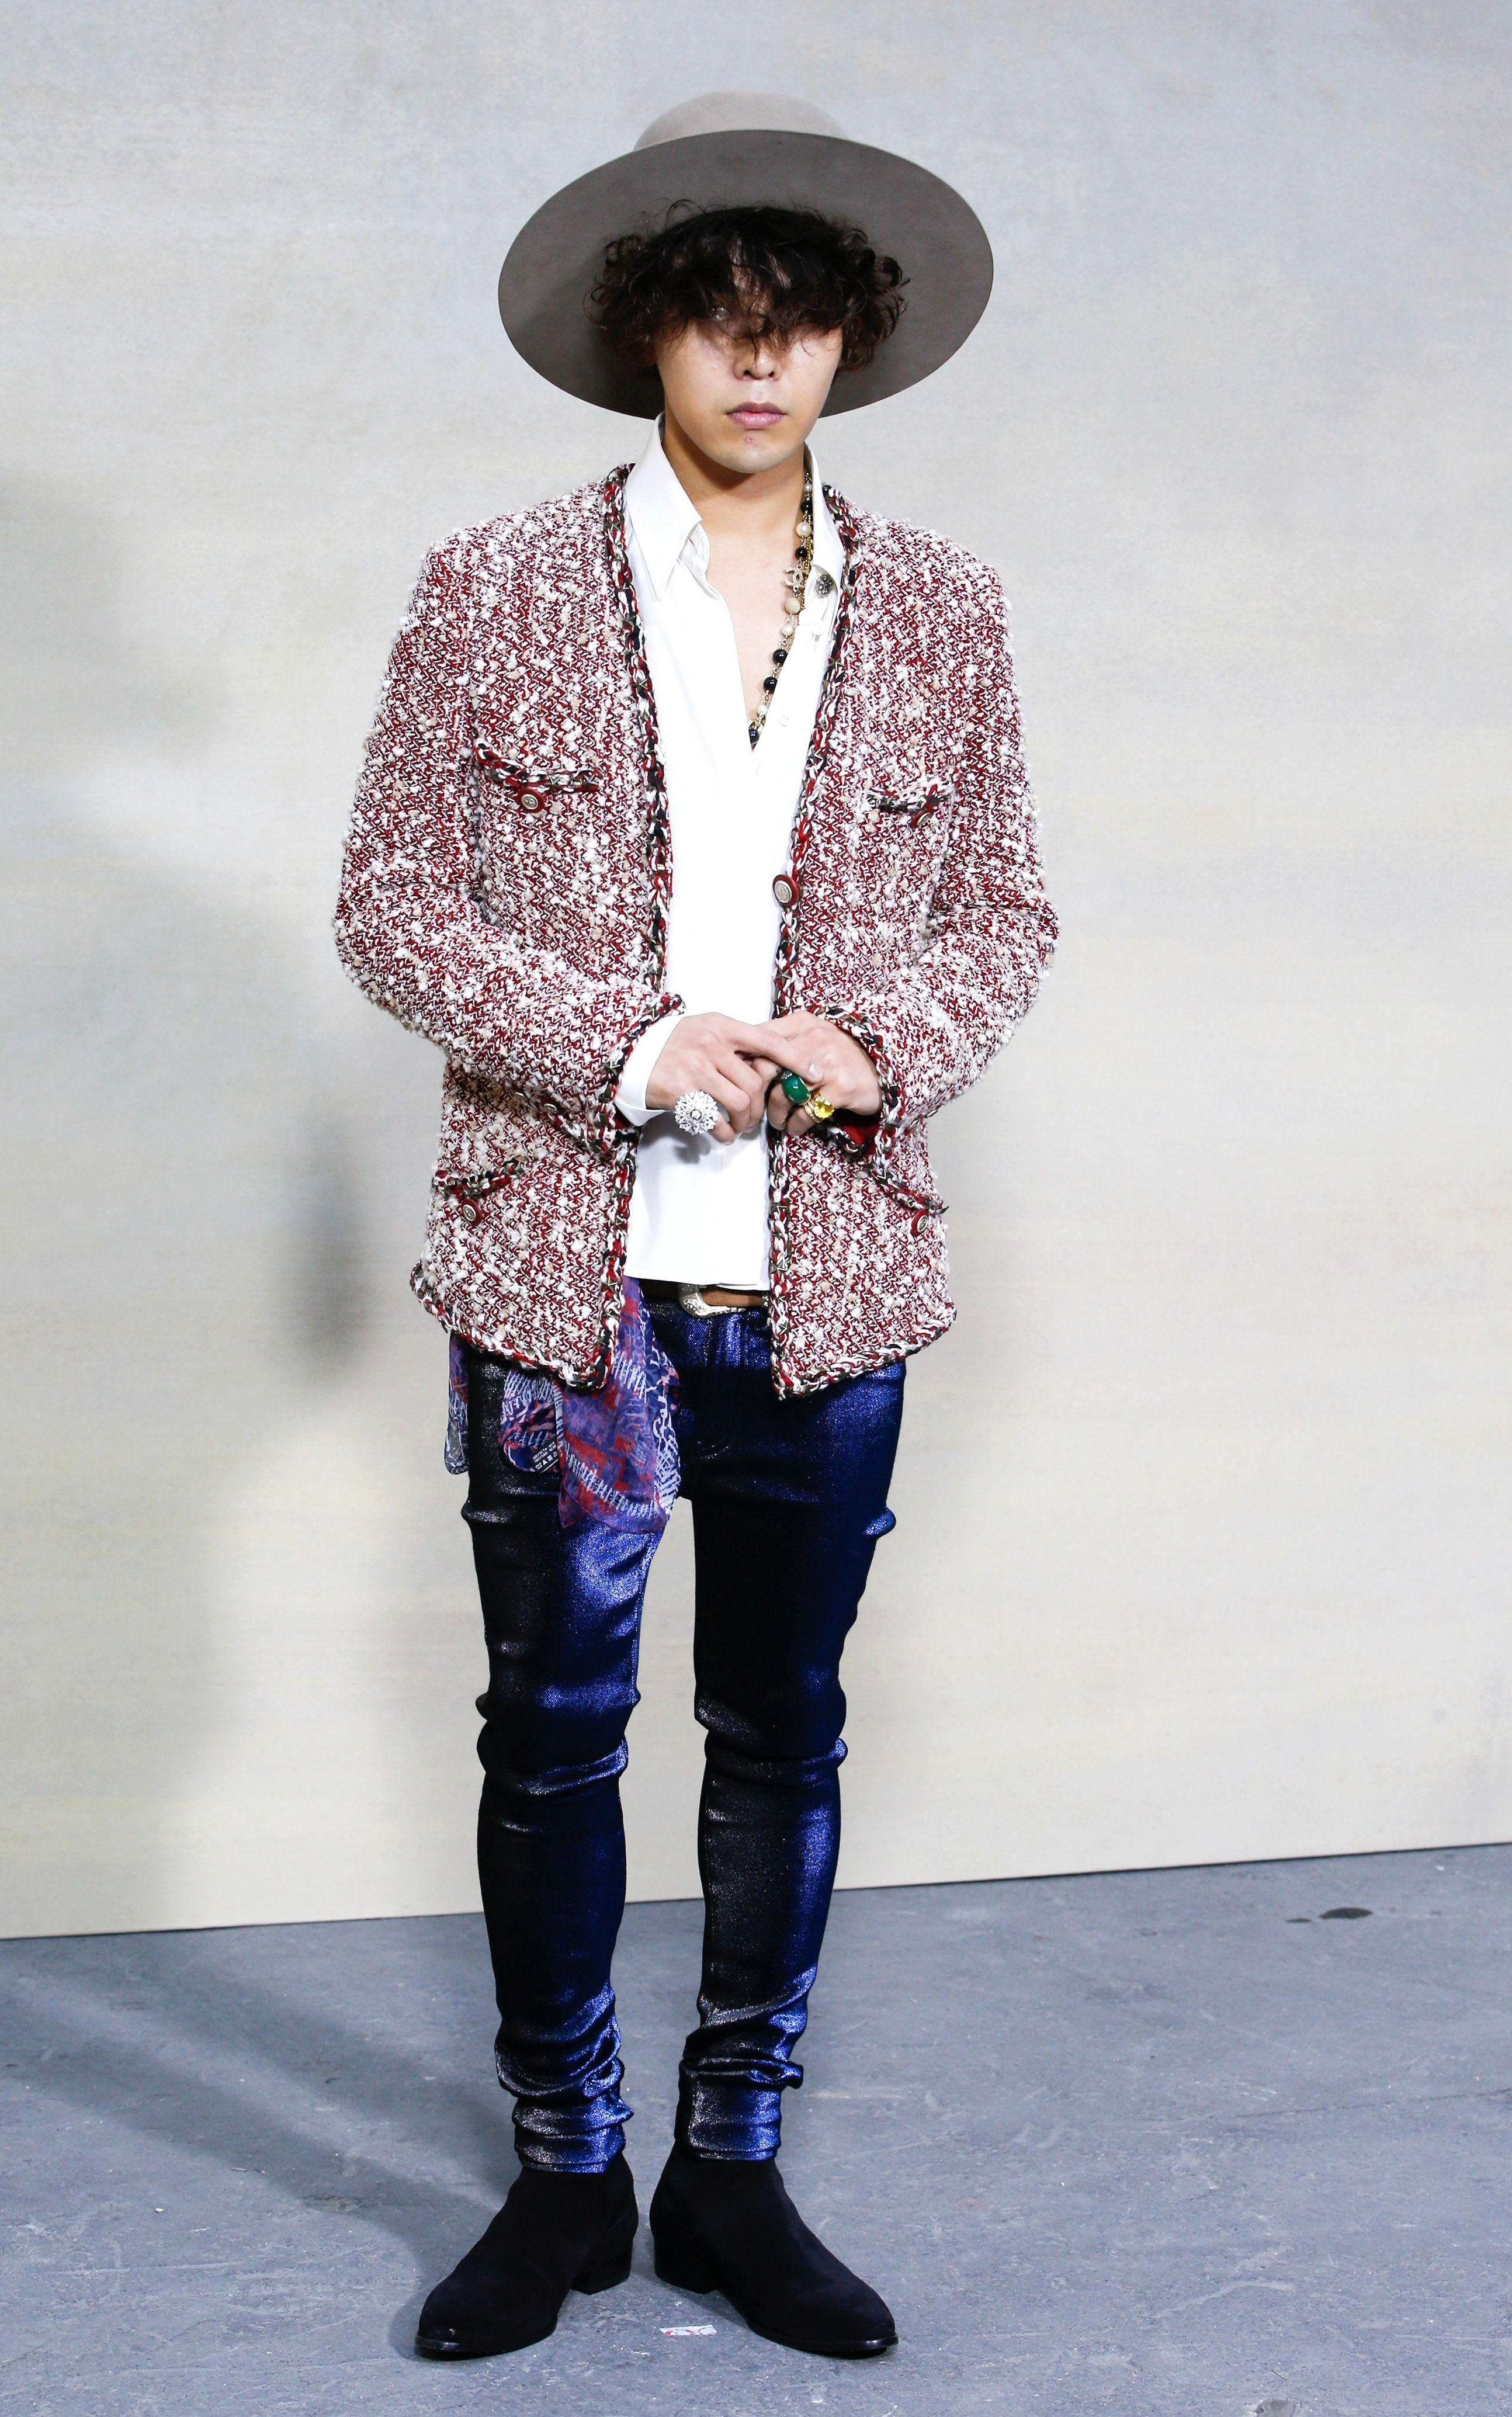 Reasons Why We Want to Be Fashion BFFs With BigBang's G-Dragon 1